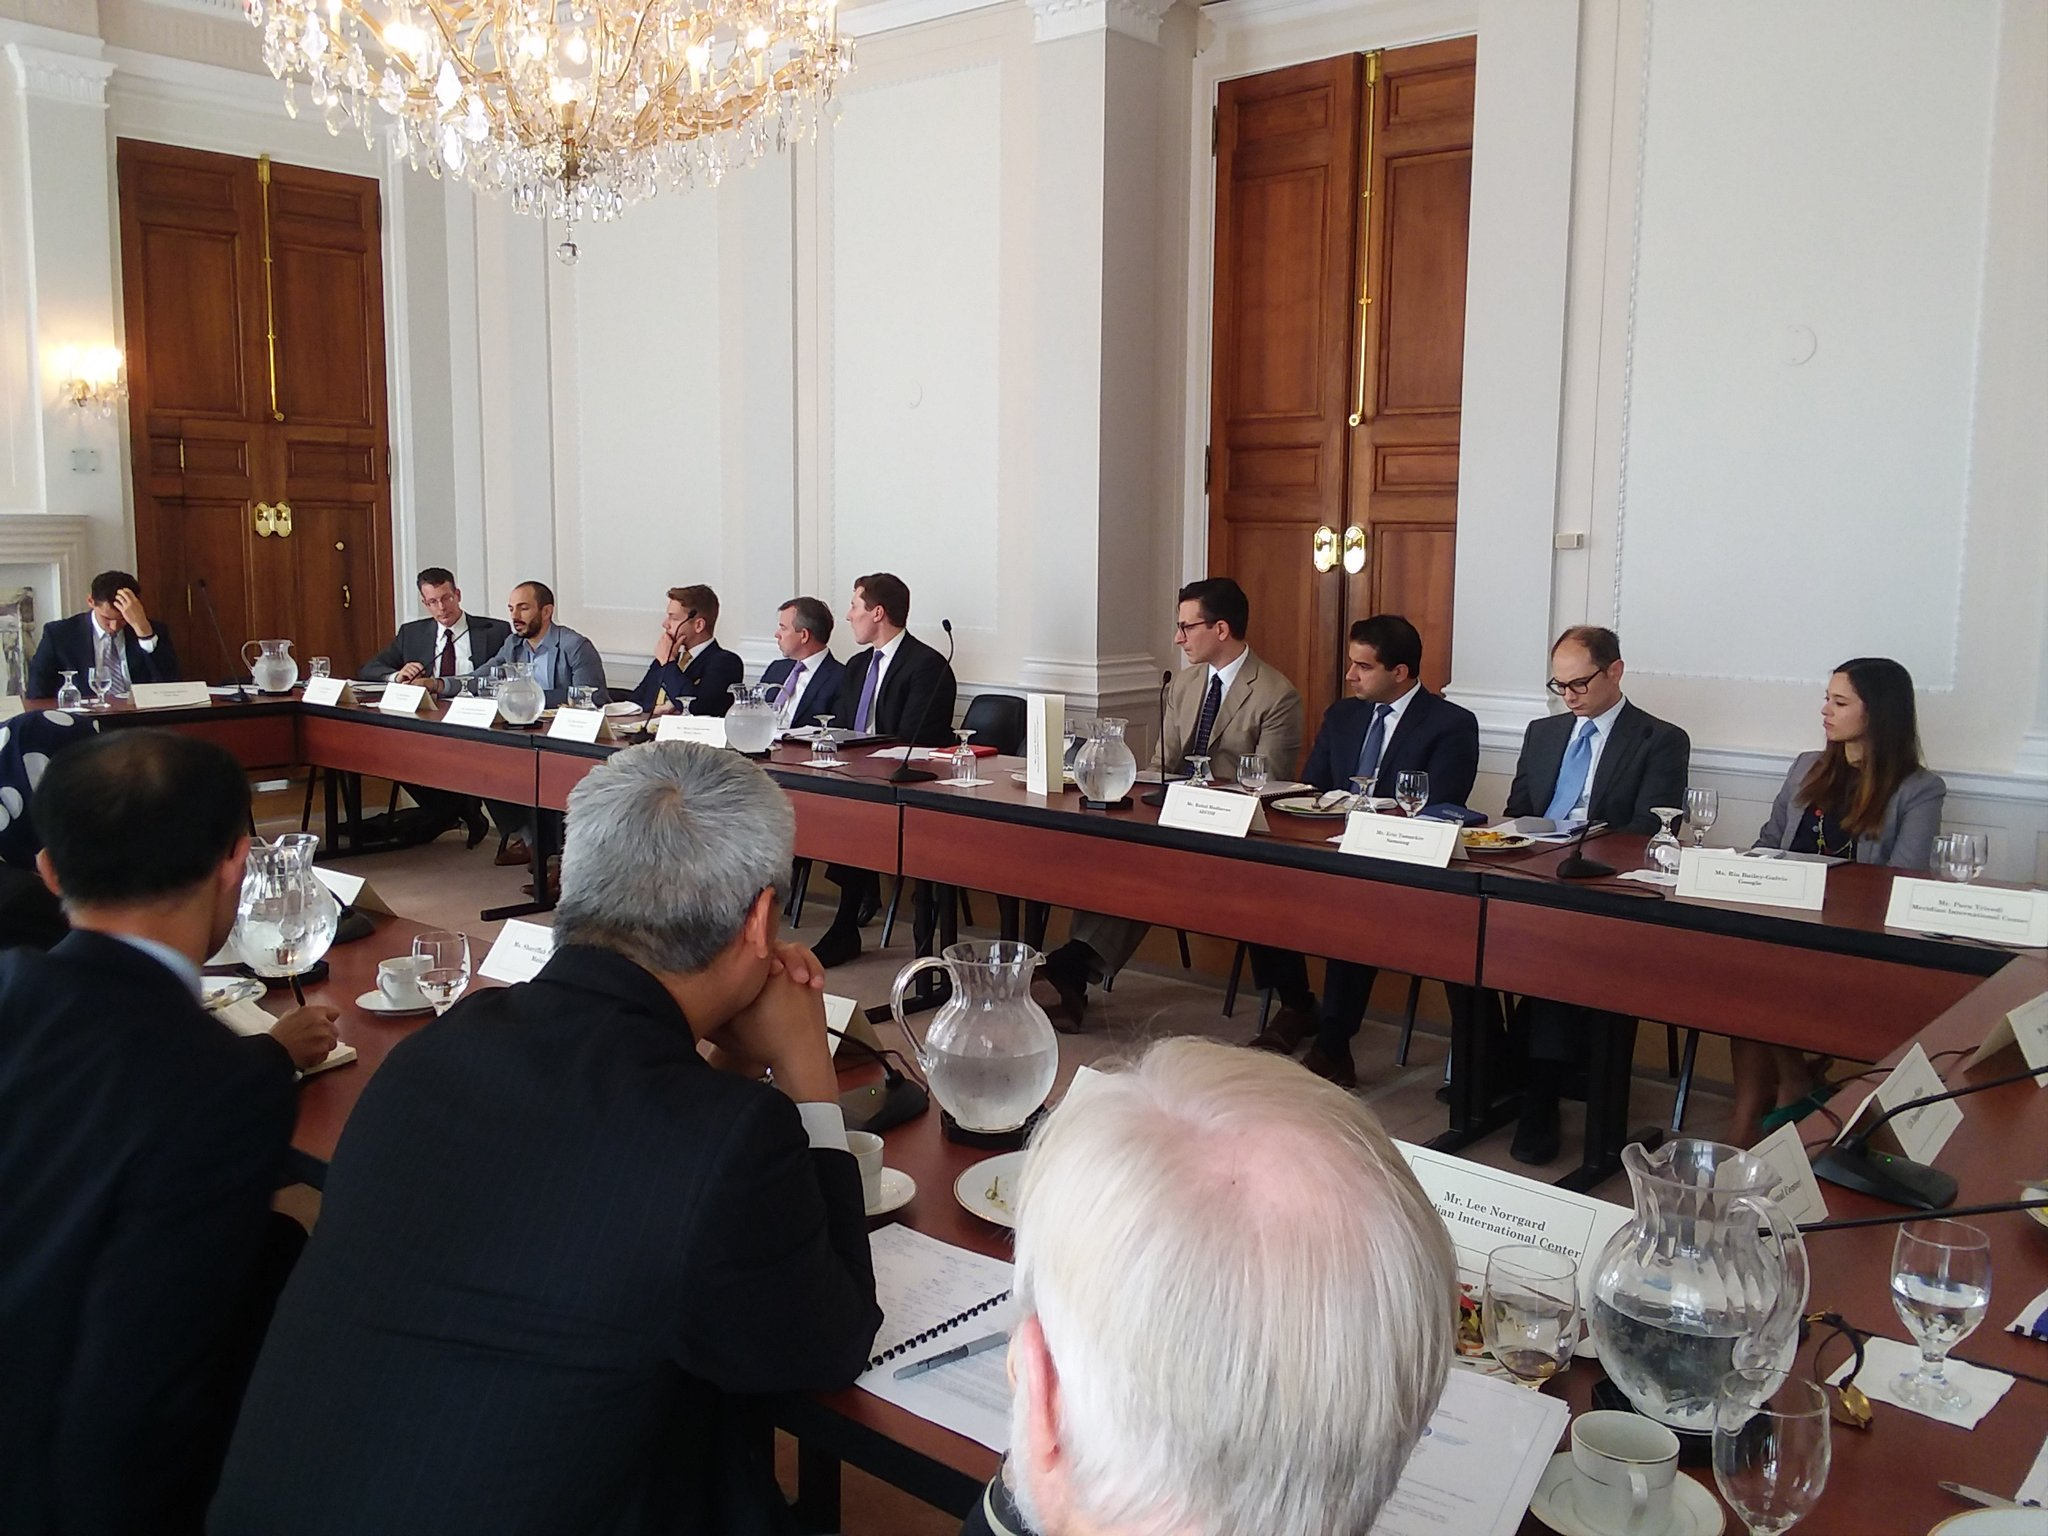 Private sector leaders meet with high-level French experts in data privacy and artificial intelligence to discuss the future of privacy policy in the U.S. and European Union